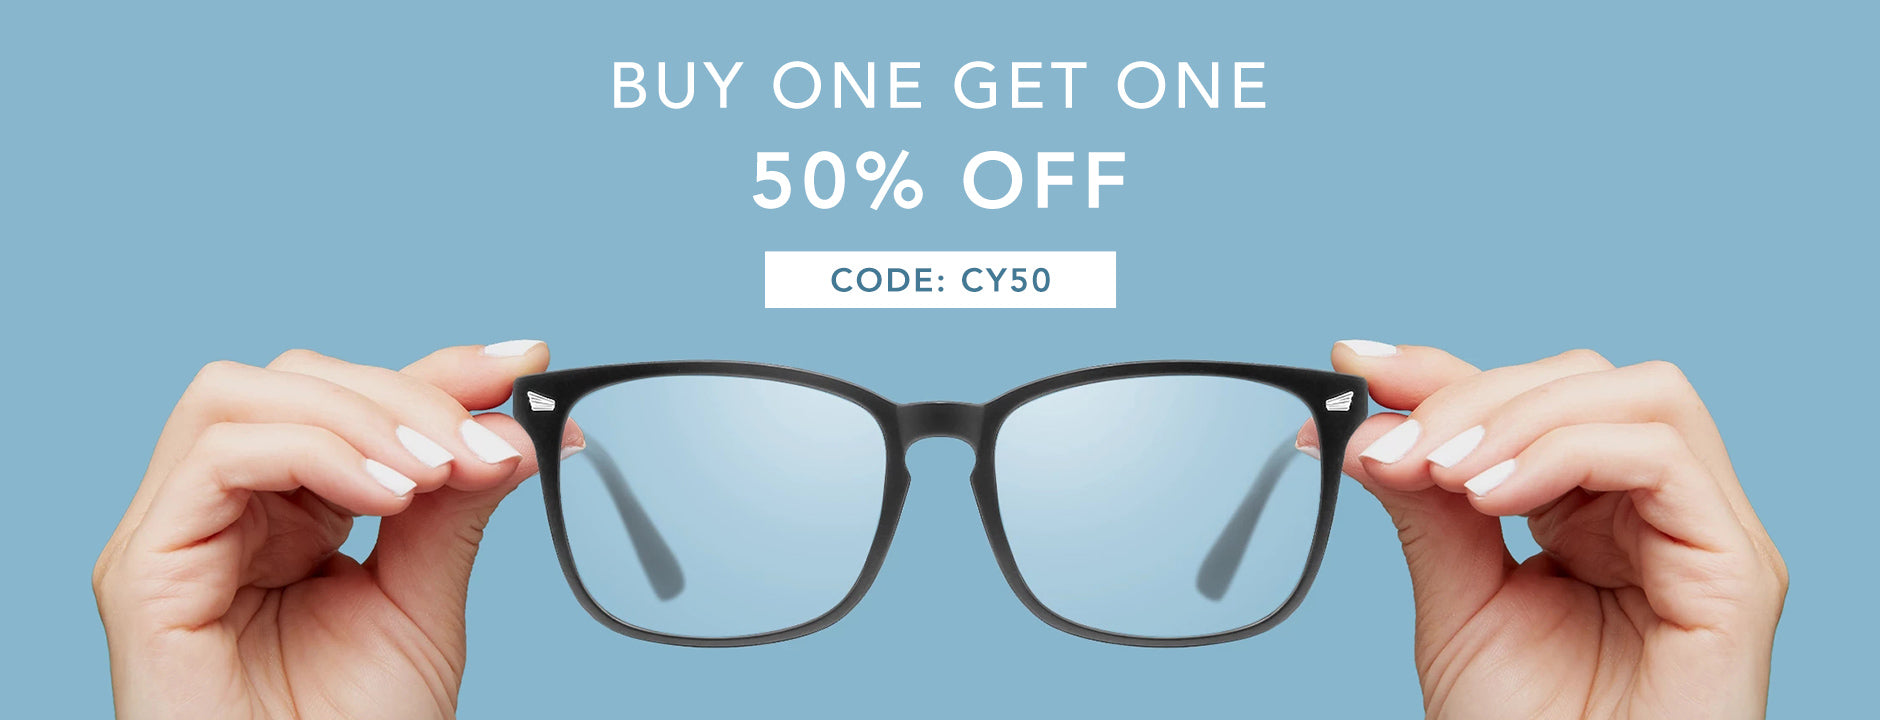 cyxus blue light filter glasses discount